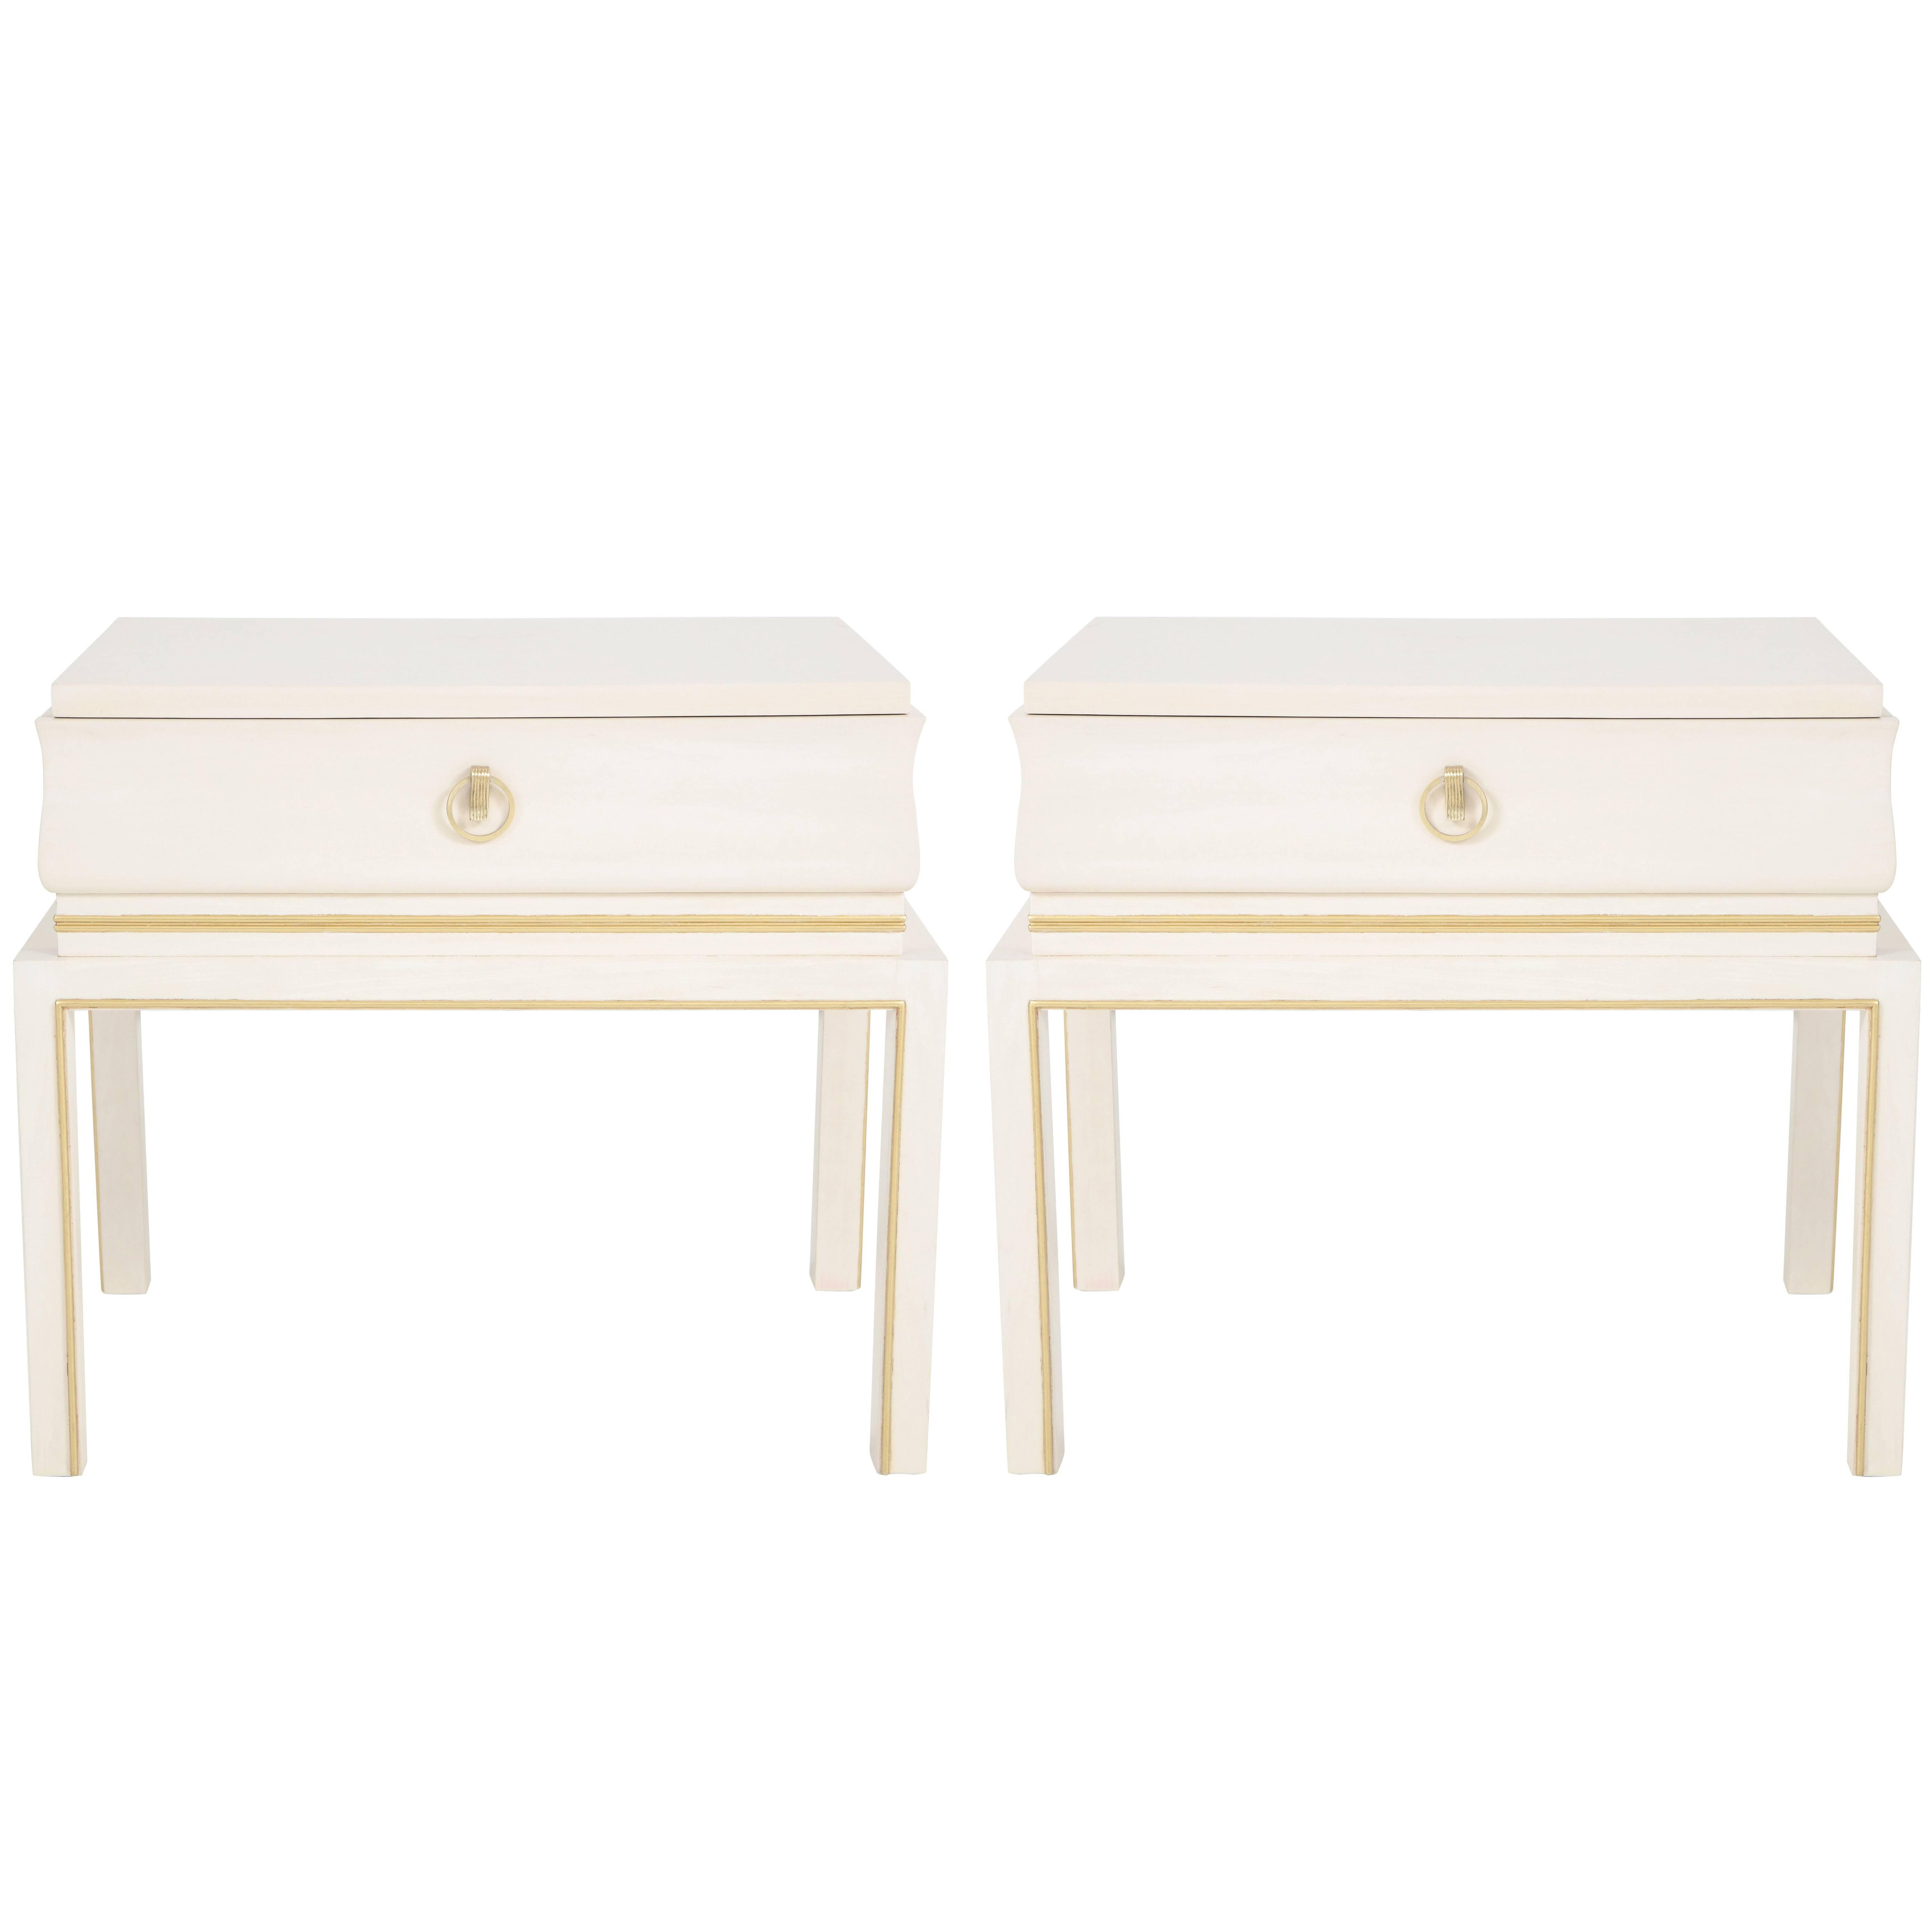 Tommi Parzinger Bleached Maple Nightstands